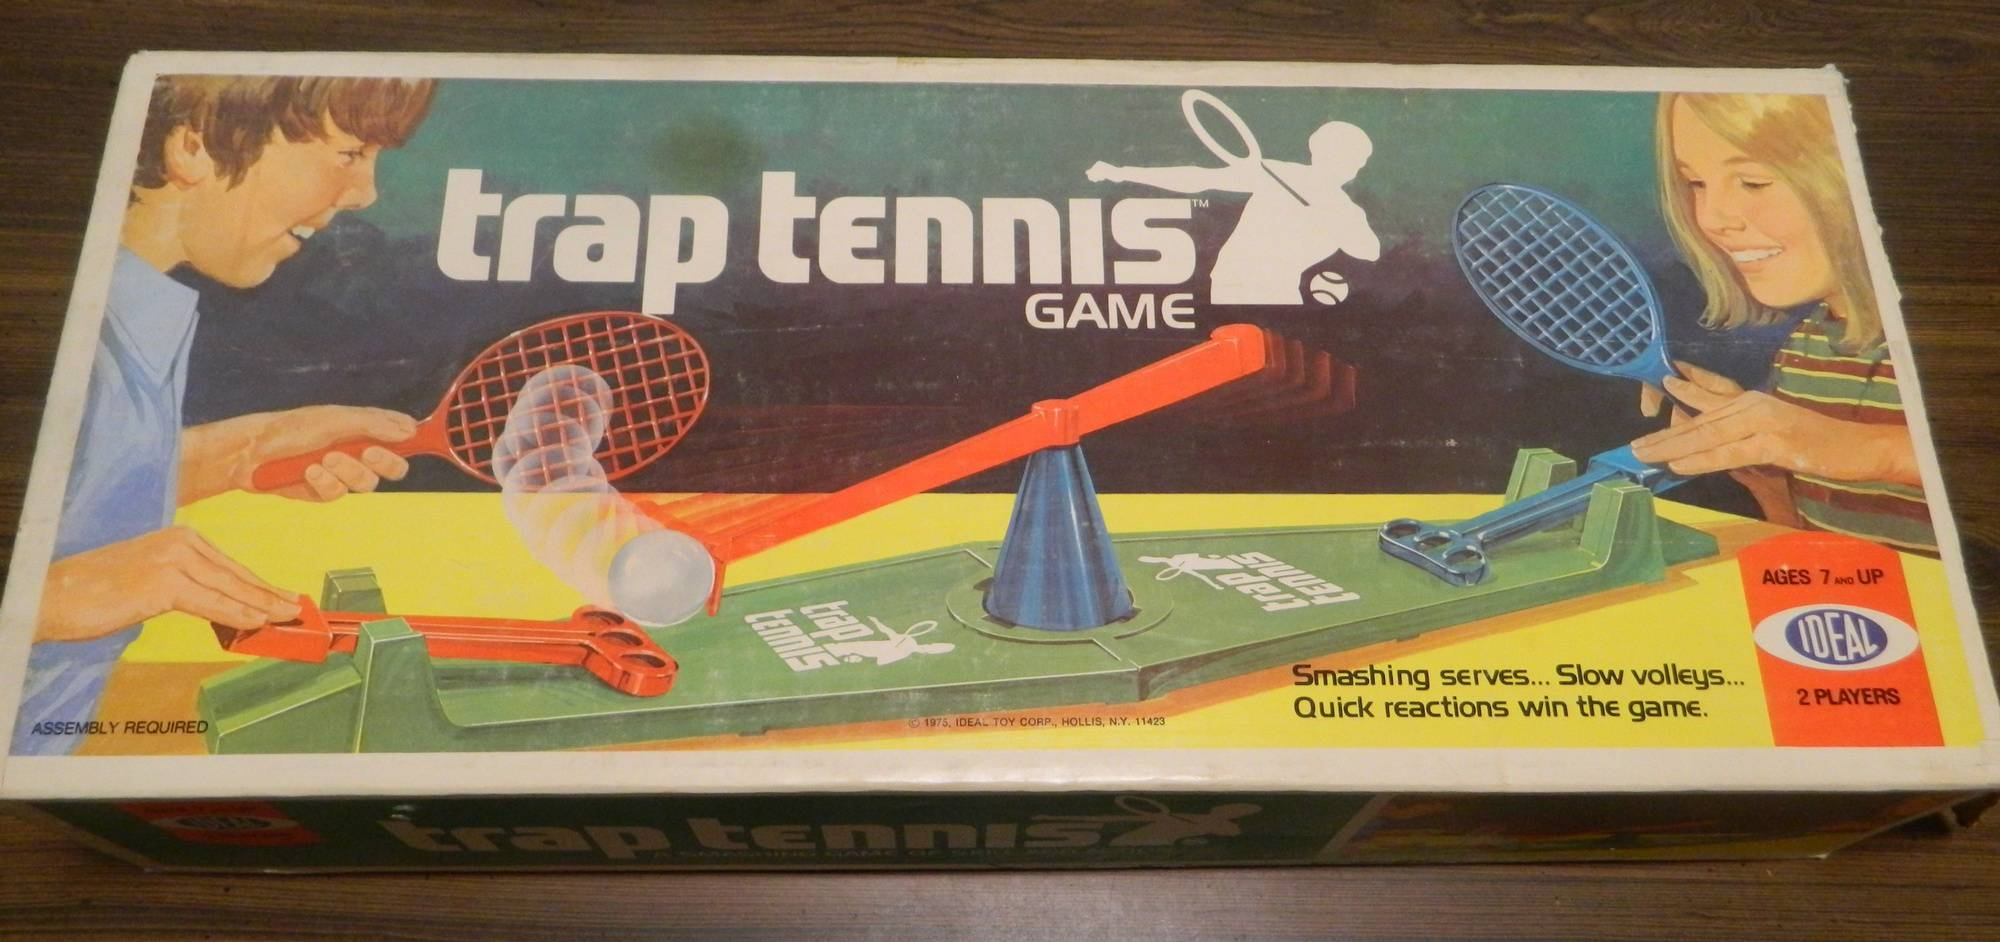 Box for Trap Tennis